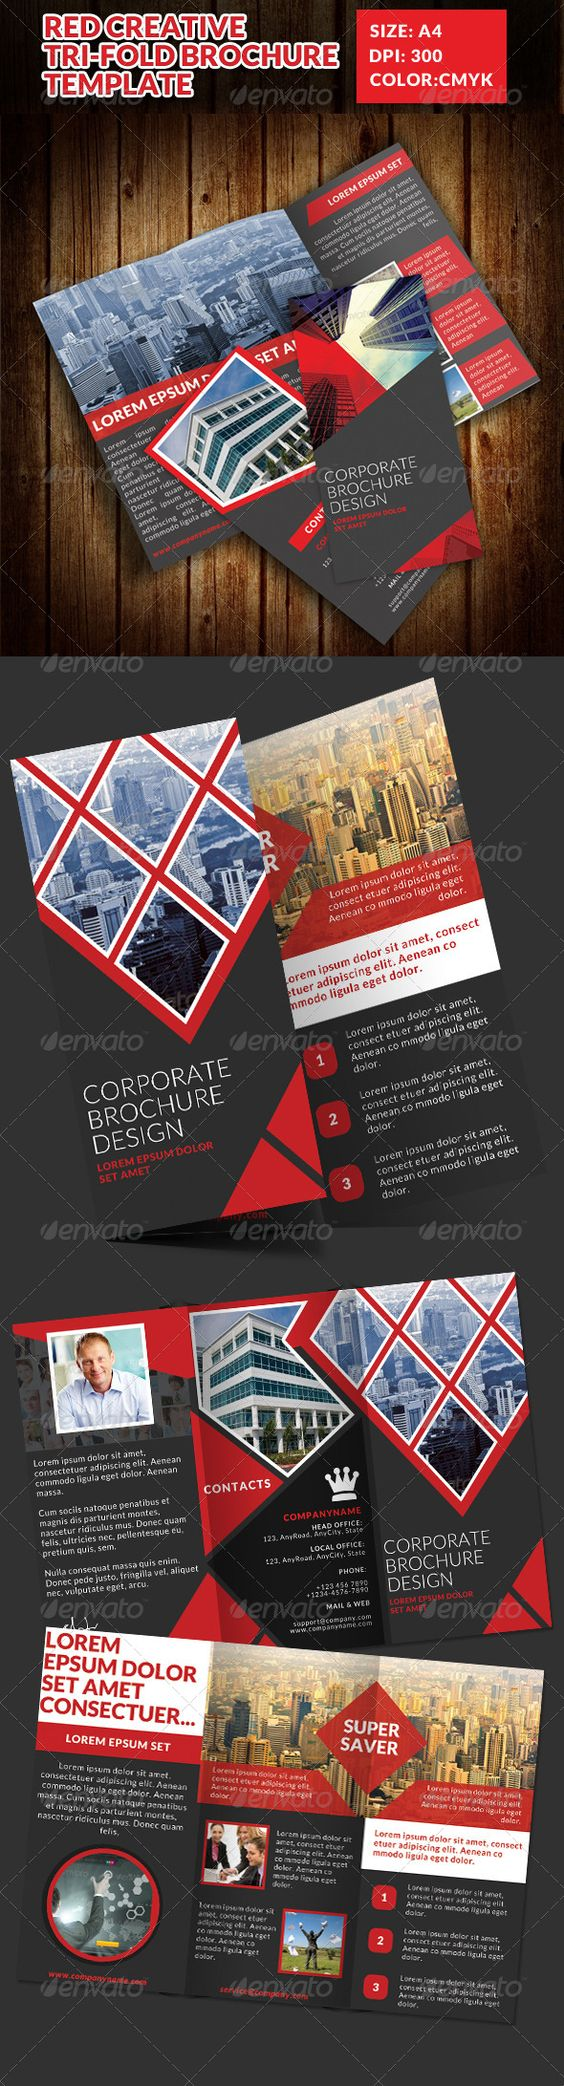 Red Creative Tri-Fold Brochure Templa